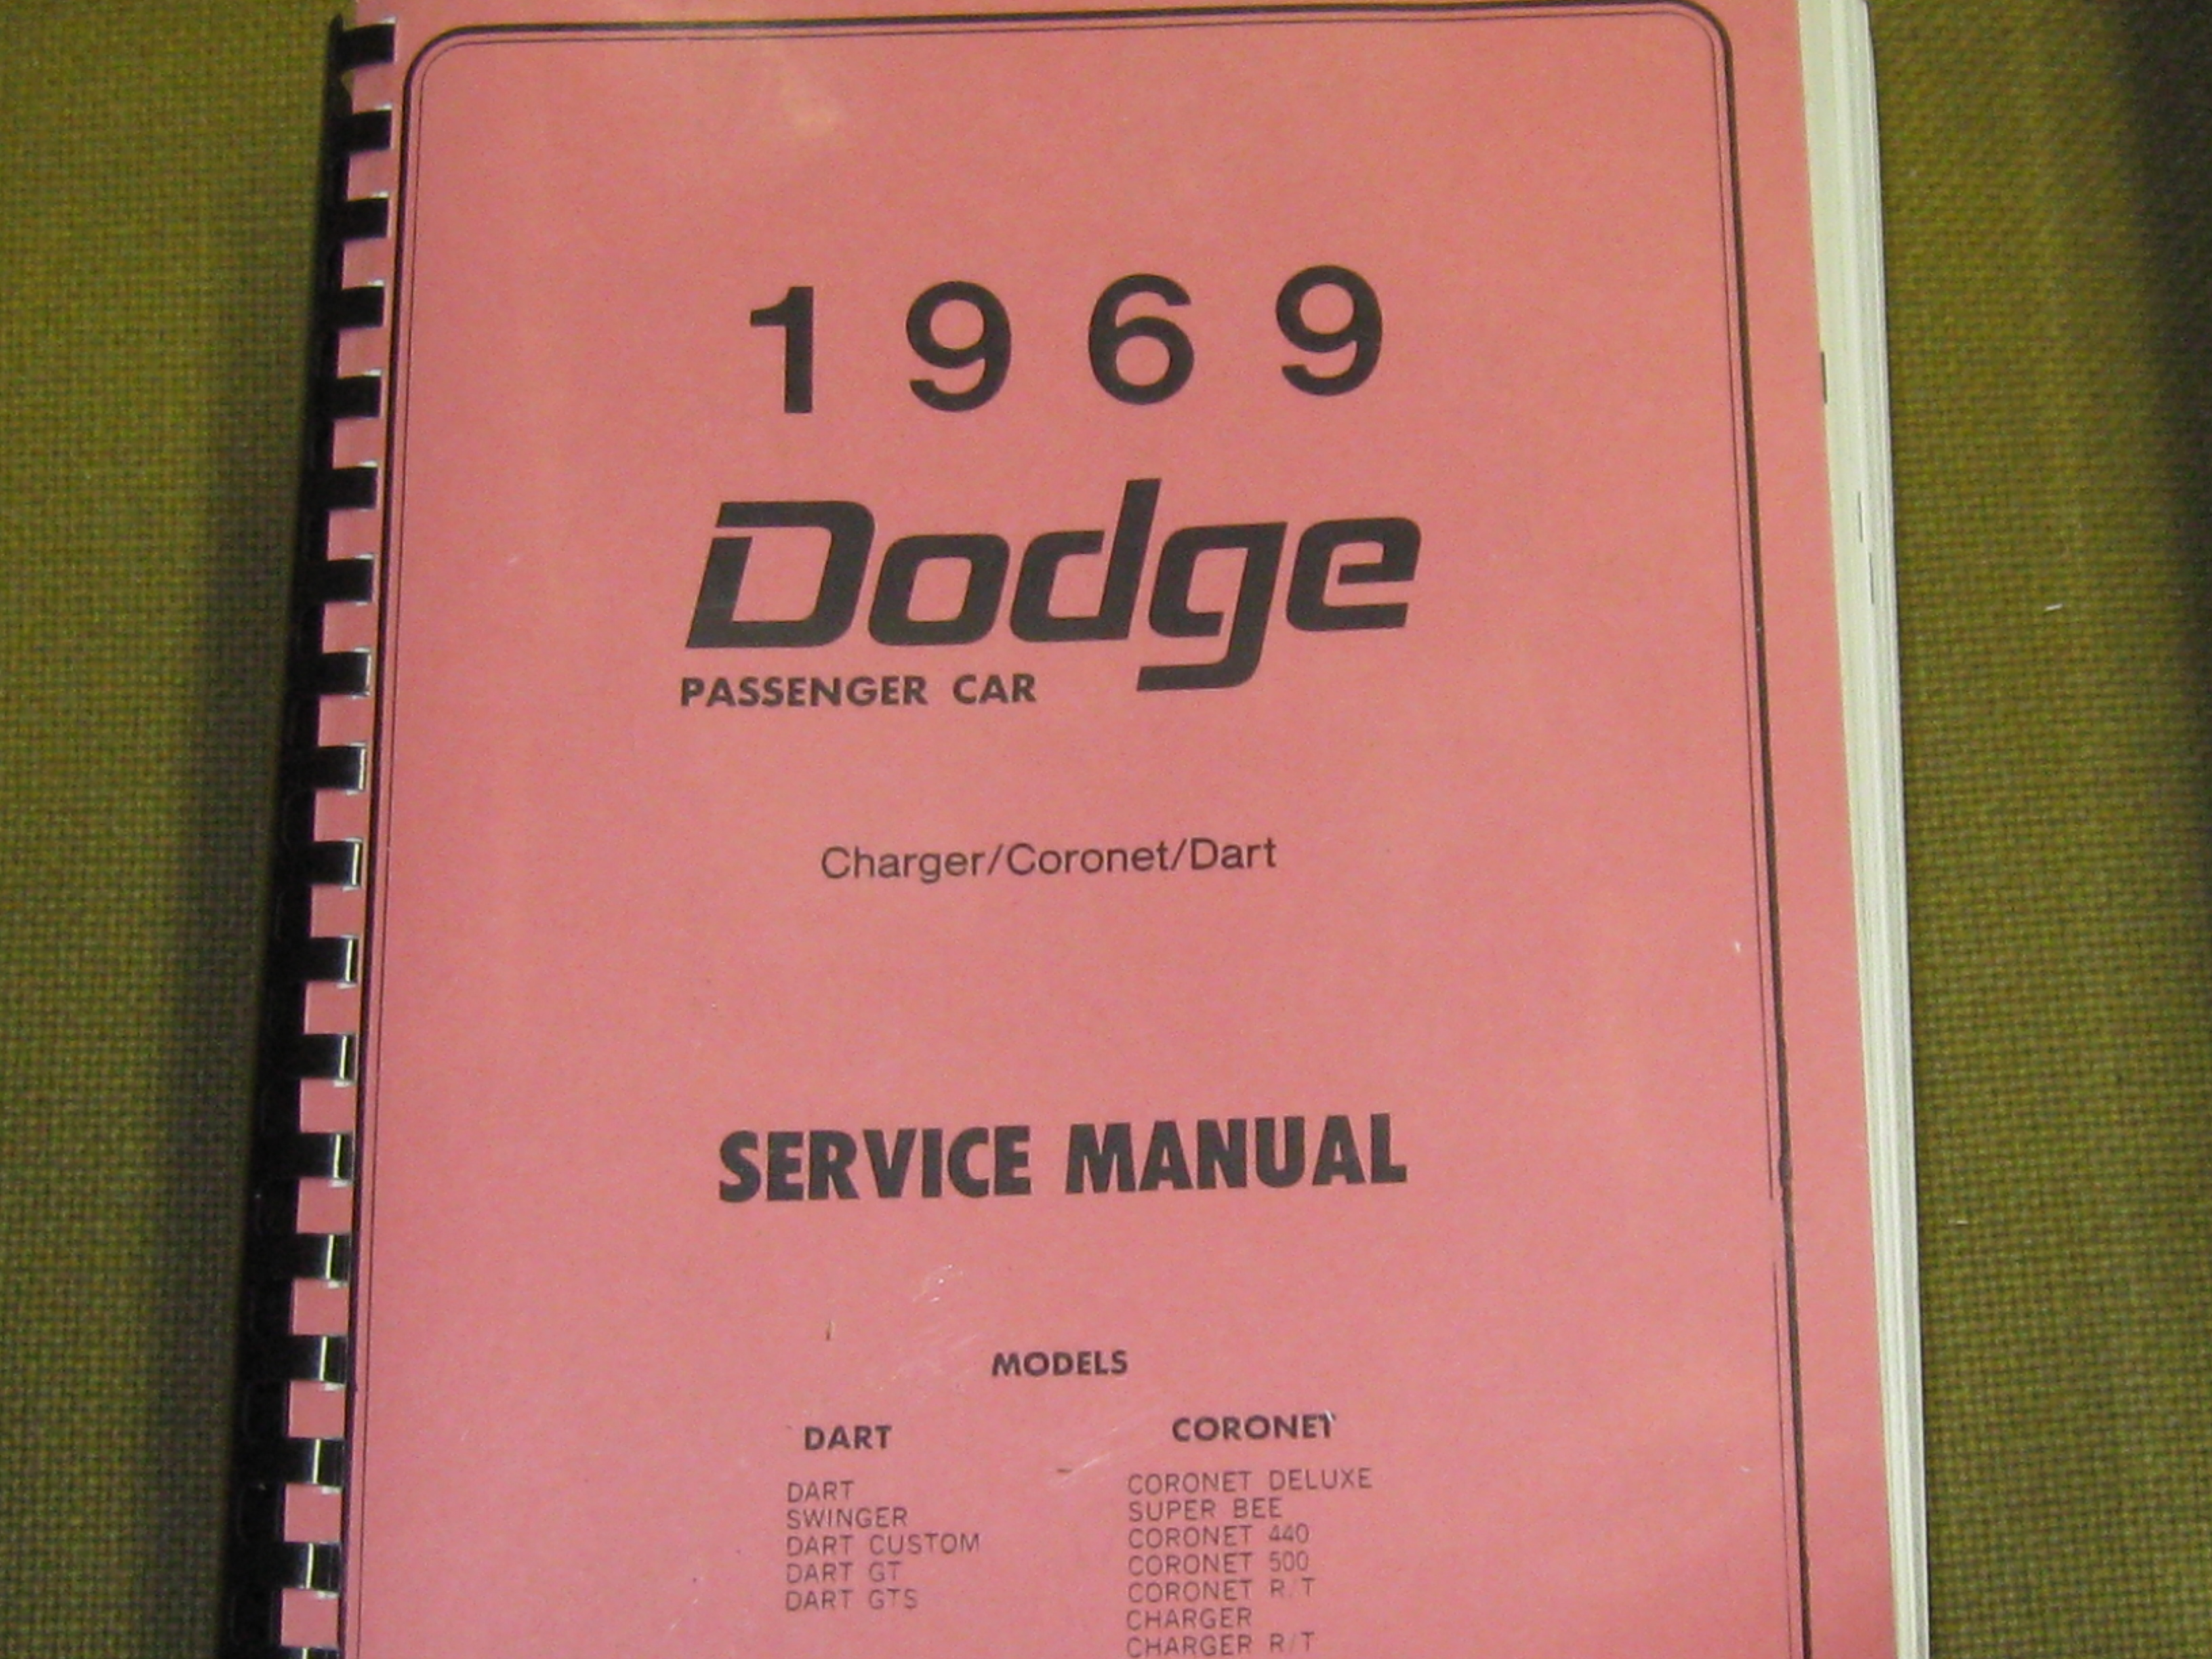 Then and now automotive 1969 dodge service manual then and now 2900 tax may apply 6 in stock quantity add to cart sku 1969 dodge service manual publicscrutiny Choice Image